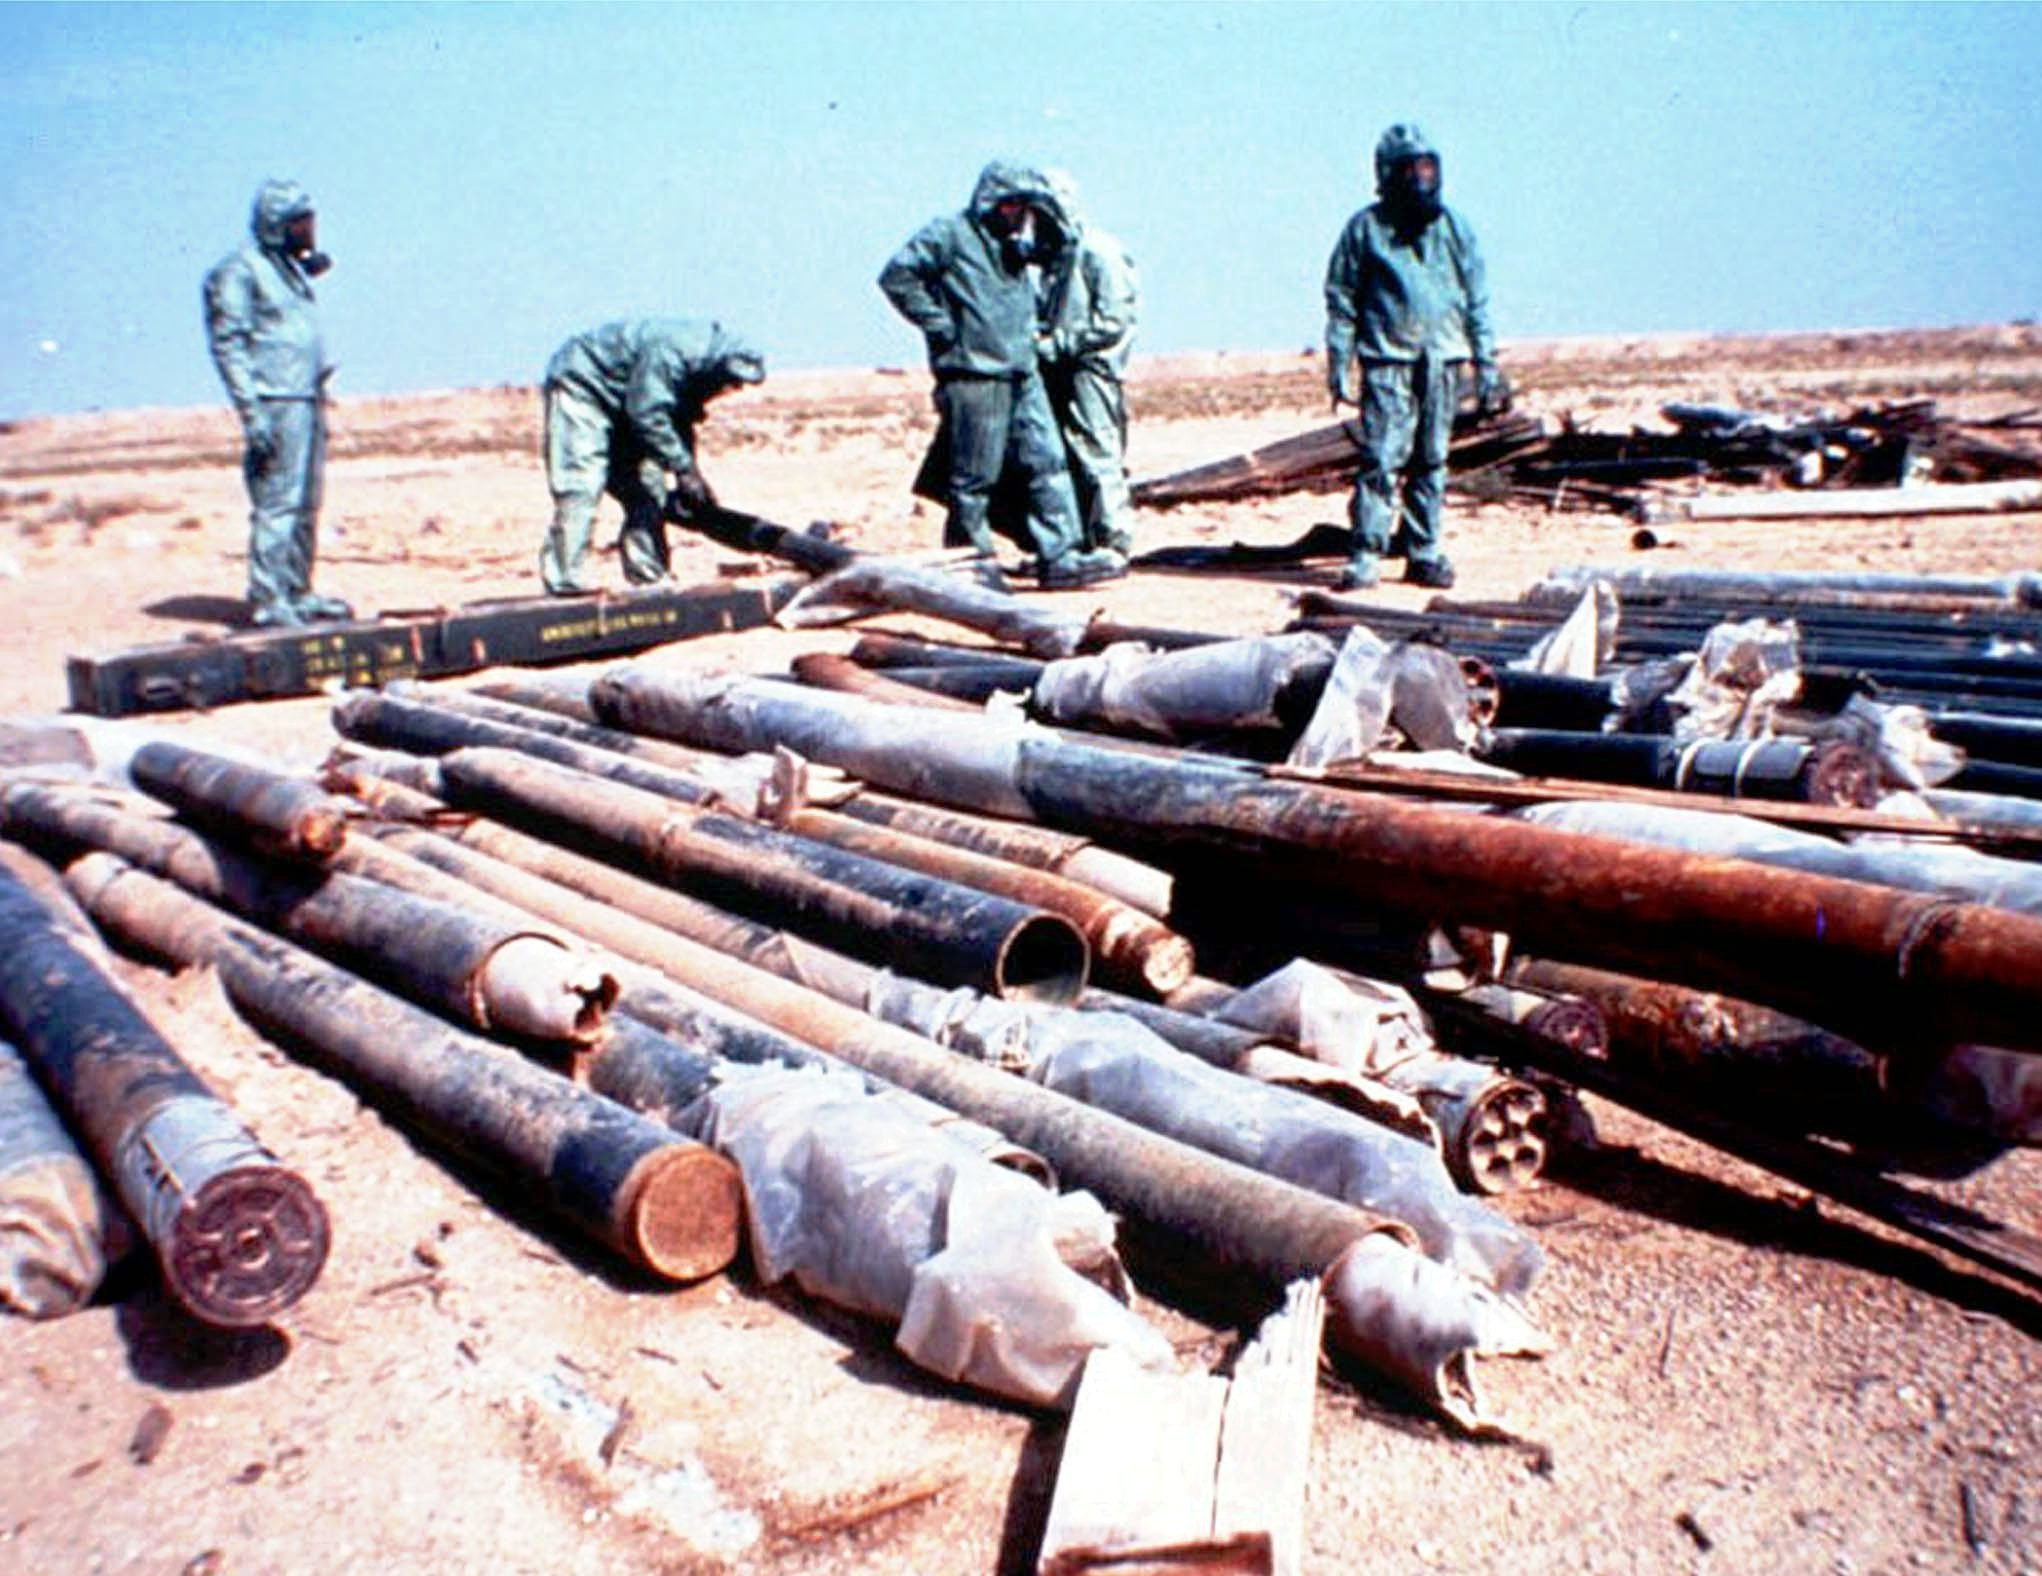 United Nations technicians ready Iraqi nerve agents weapons for elimination (Image: British Ministry of Defense)